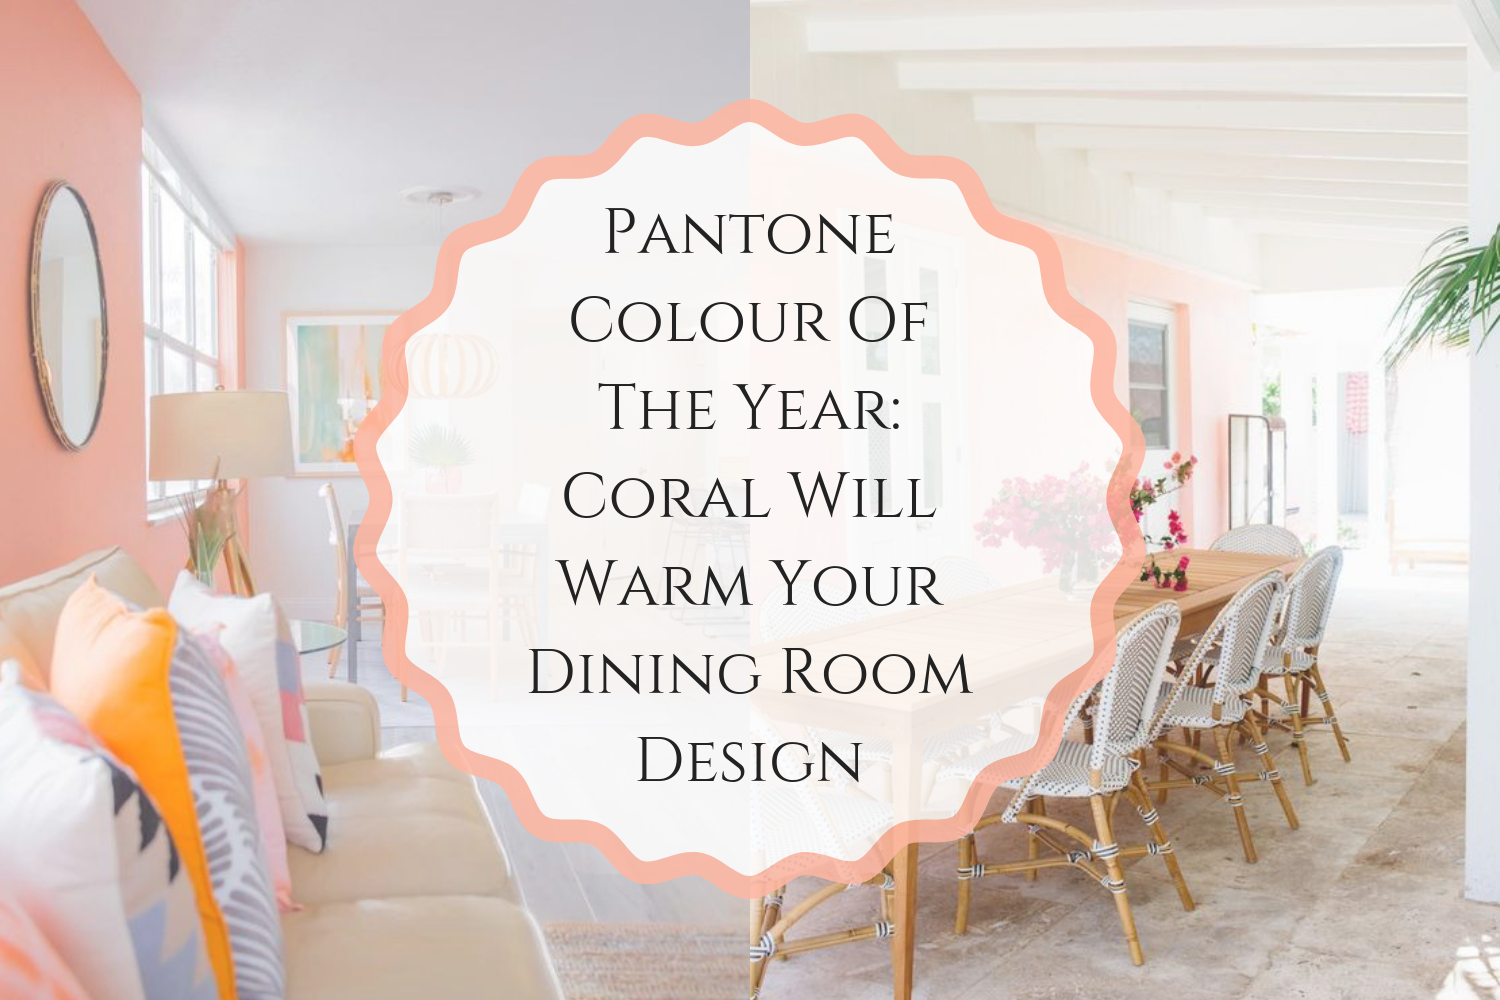 Pantone Colour Of The Year_ Coral Will Warm Your Dining Room Design (1)